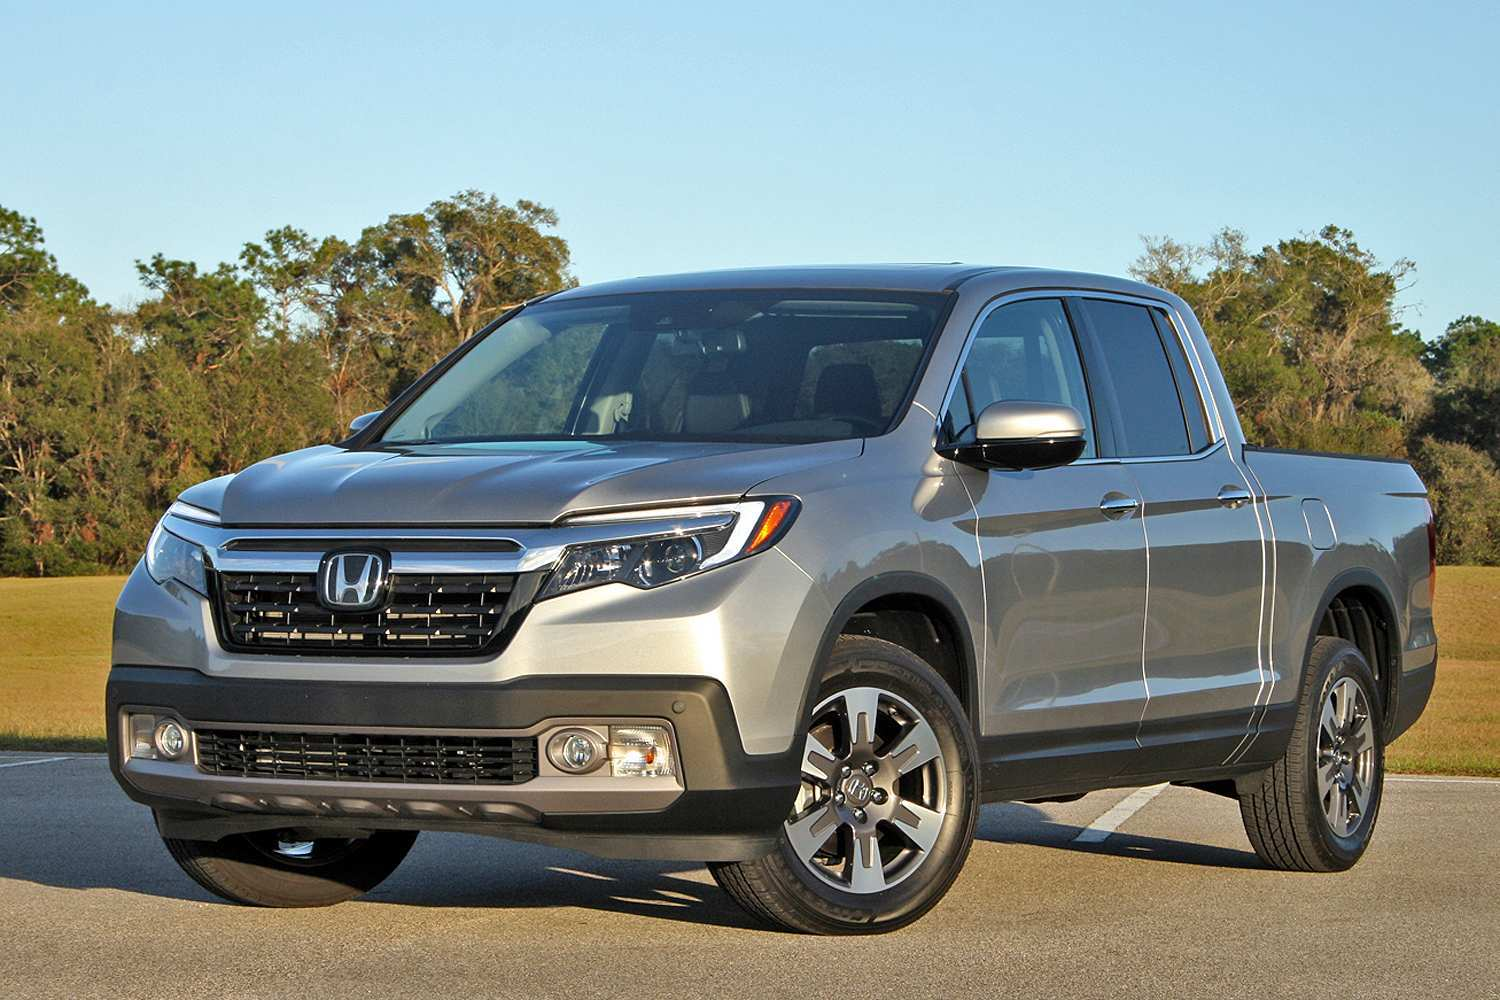 60 A 2020 Honda Ridgelineand Reviews